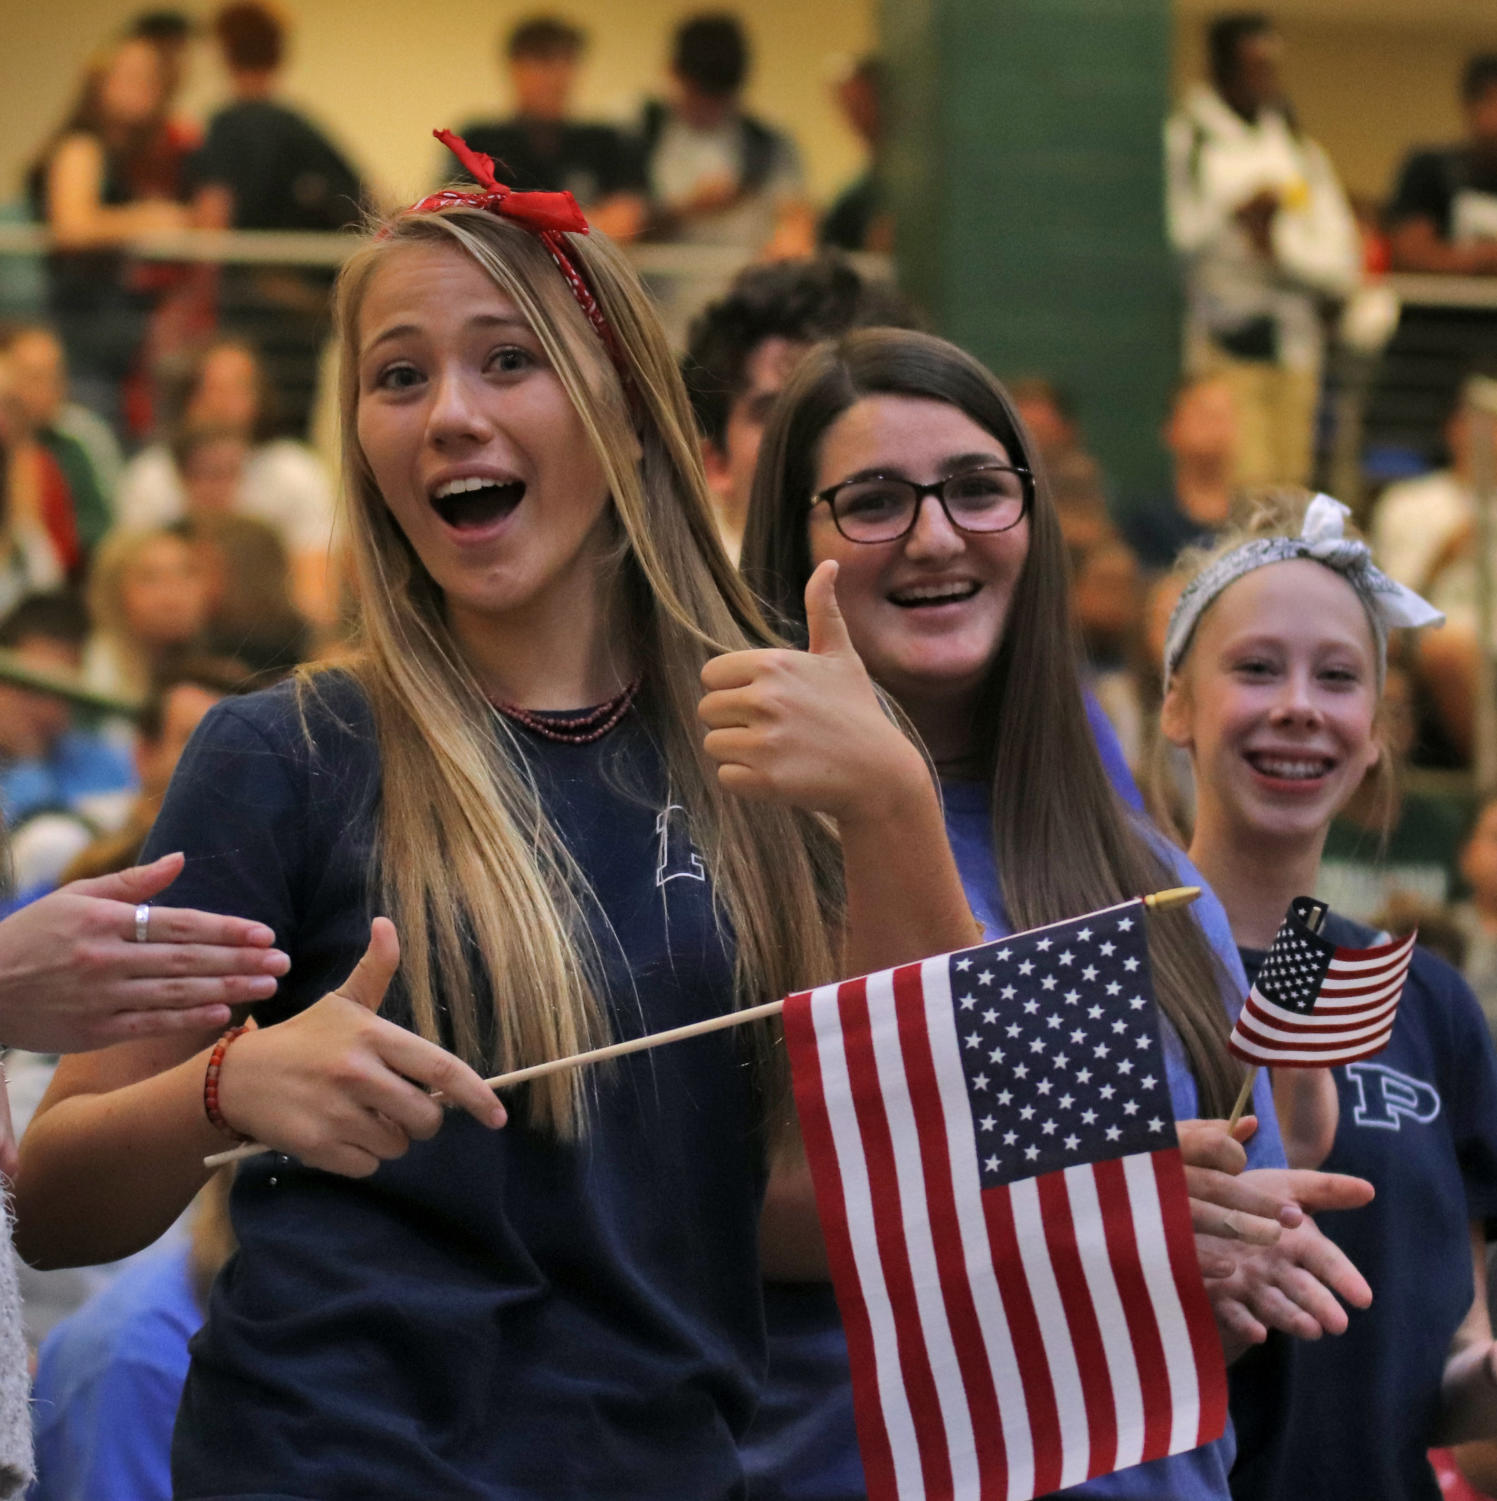 Juniors+Madi+Wells+and+Maddie+Varney+smile+for+the+camera+at+the+USA+pep+rally%2C+last+Friday%2C+Sept.+6.+Students+danced%2C+sang+and+honored+veterans+at+the+event.+The+next+pep+rally+will+include+the+community+on+Sept.+27+at+the+stadium.+